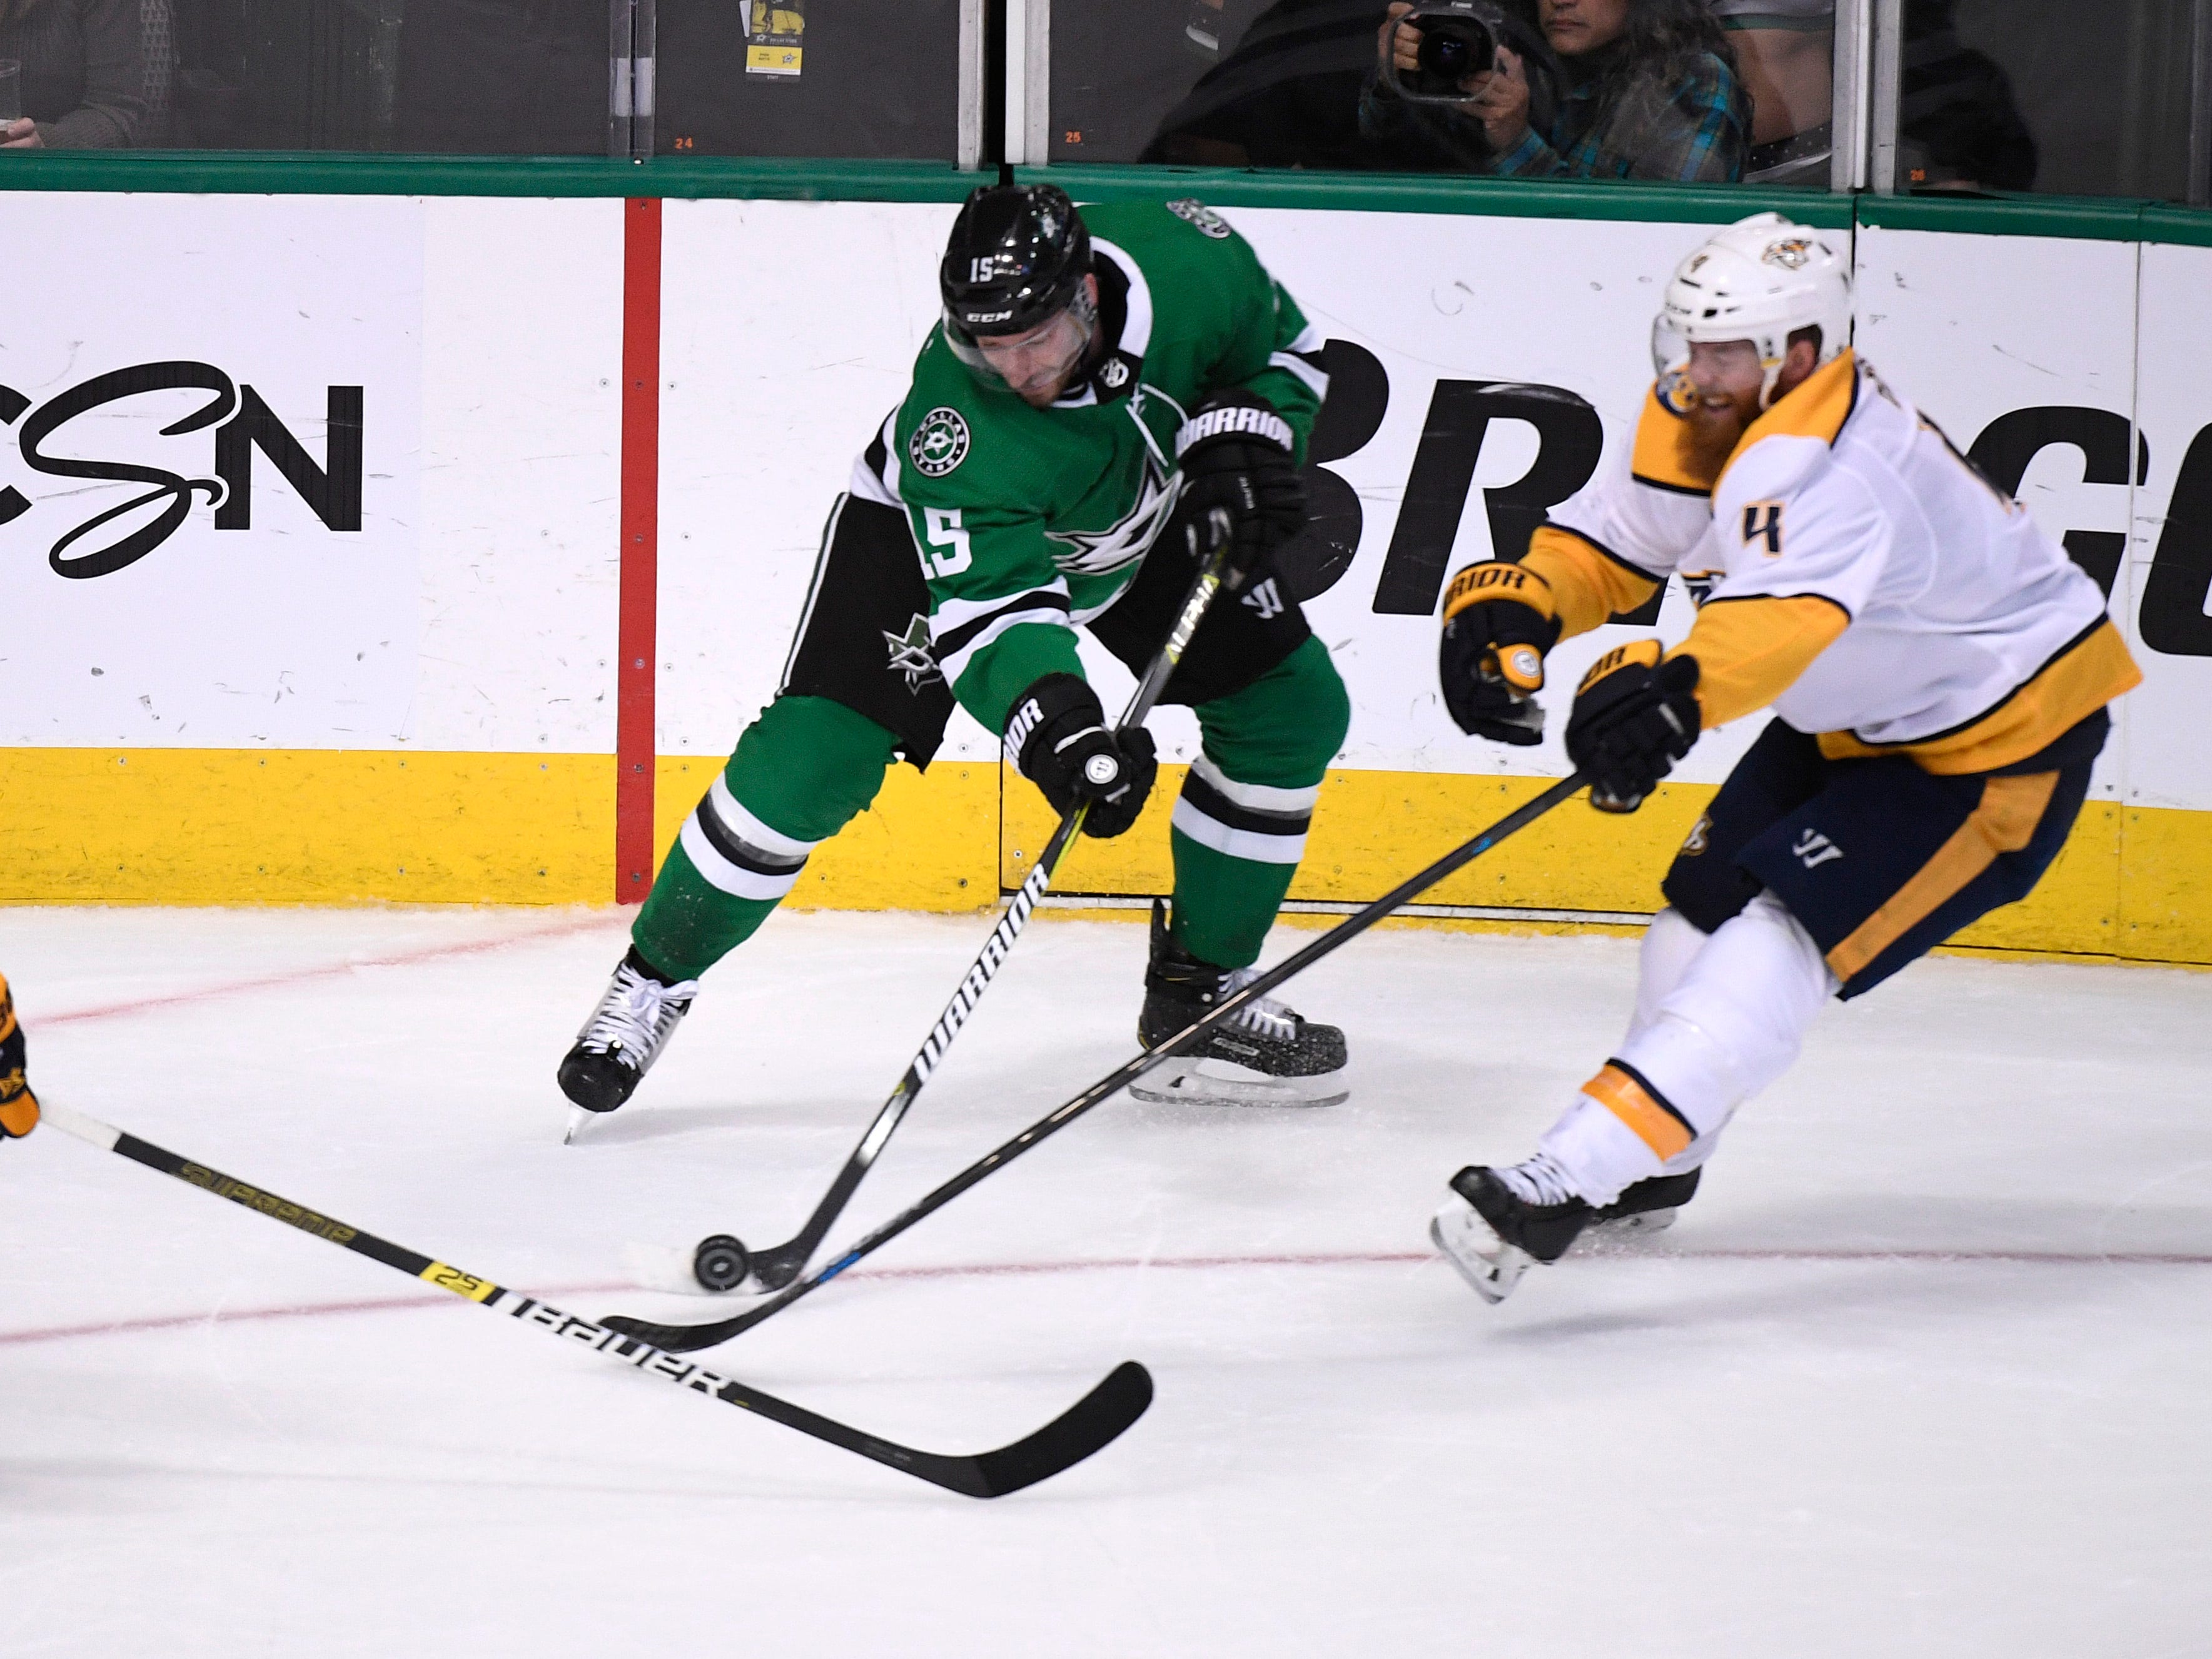 Nashville Predators right wing Craig Smith (15), Dallas Stars left wing Blake Comeau (15) and Predators defenseman Ryan Ellis (4) battle for the puck during the second period of the divisional semifinal game at the American Airlines Center in Dallas, Texas, Monday, April 22, 2019.